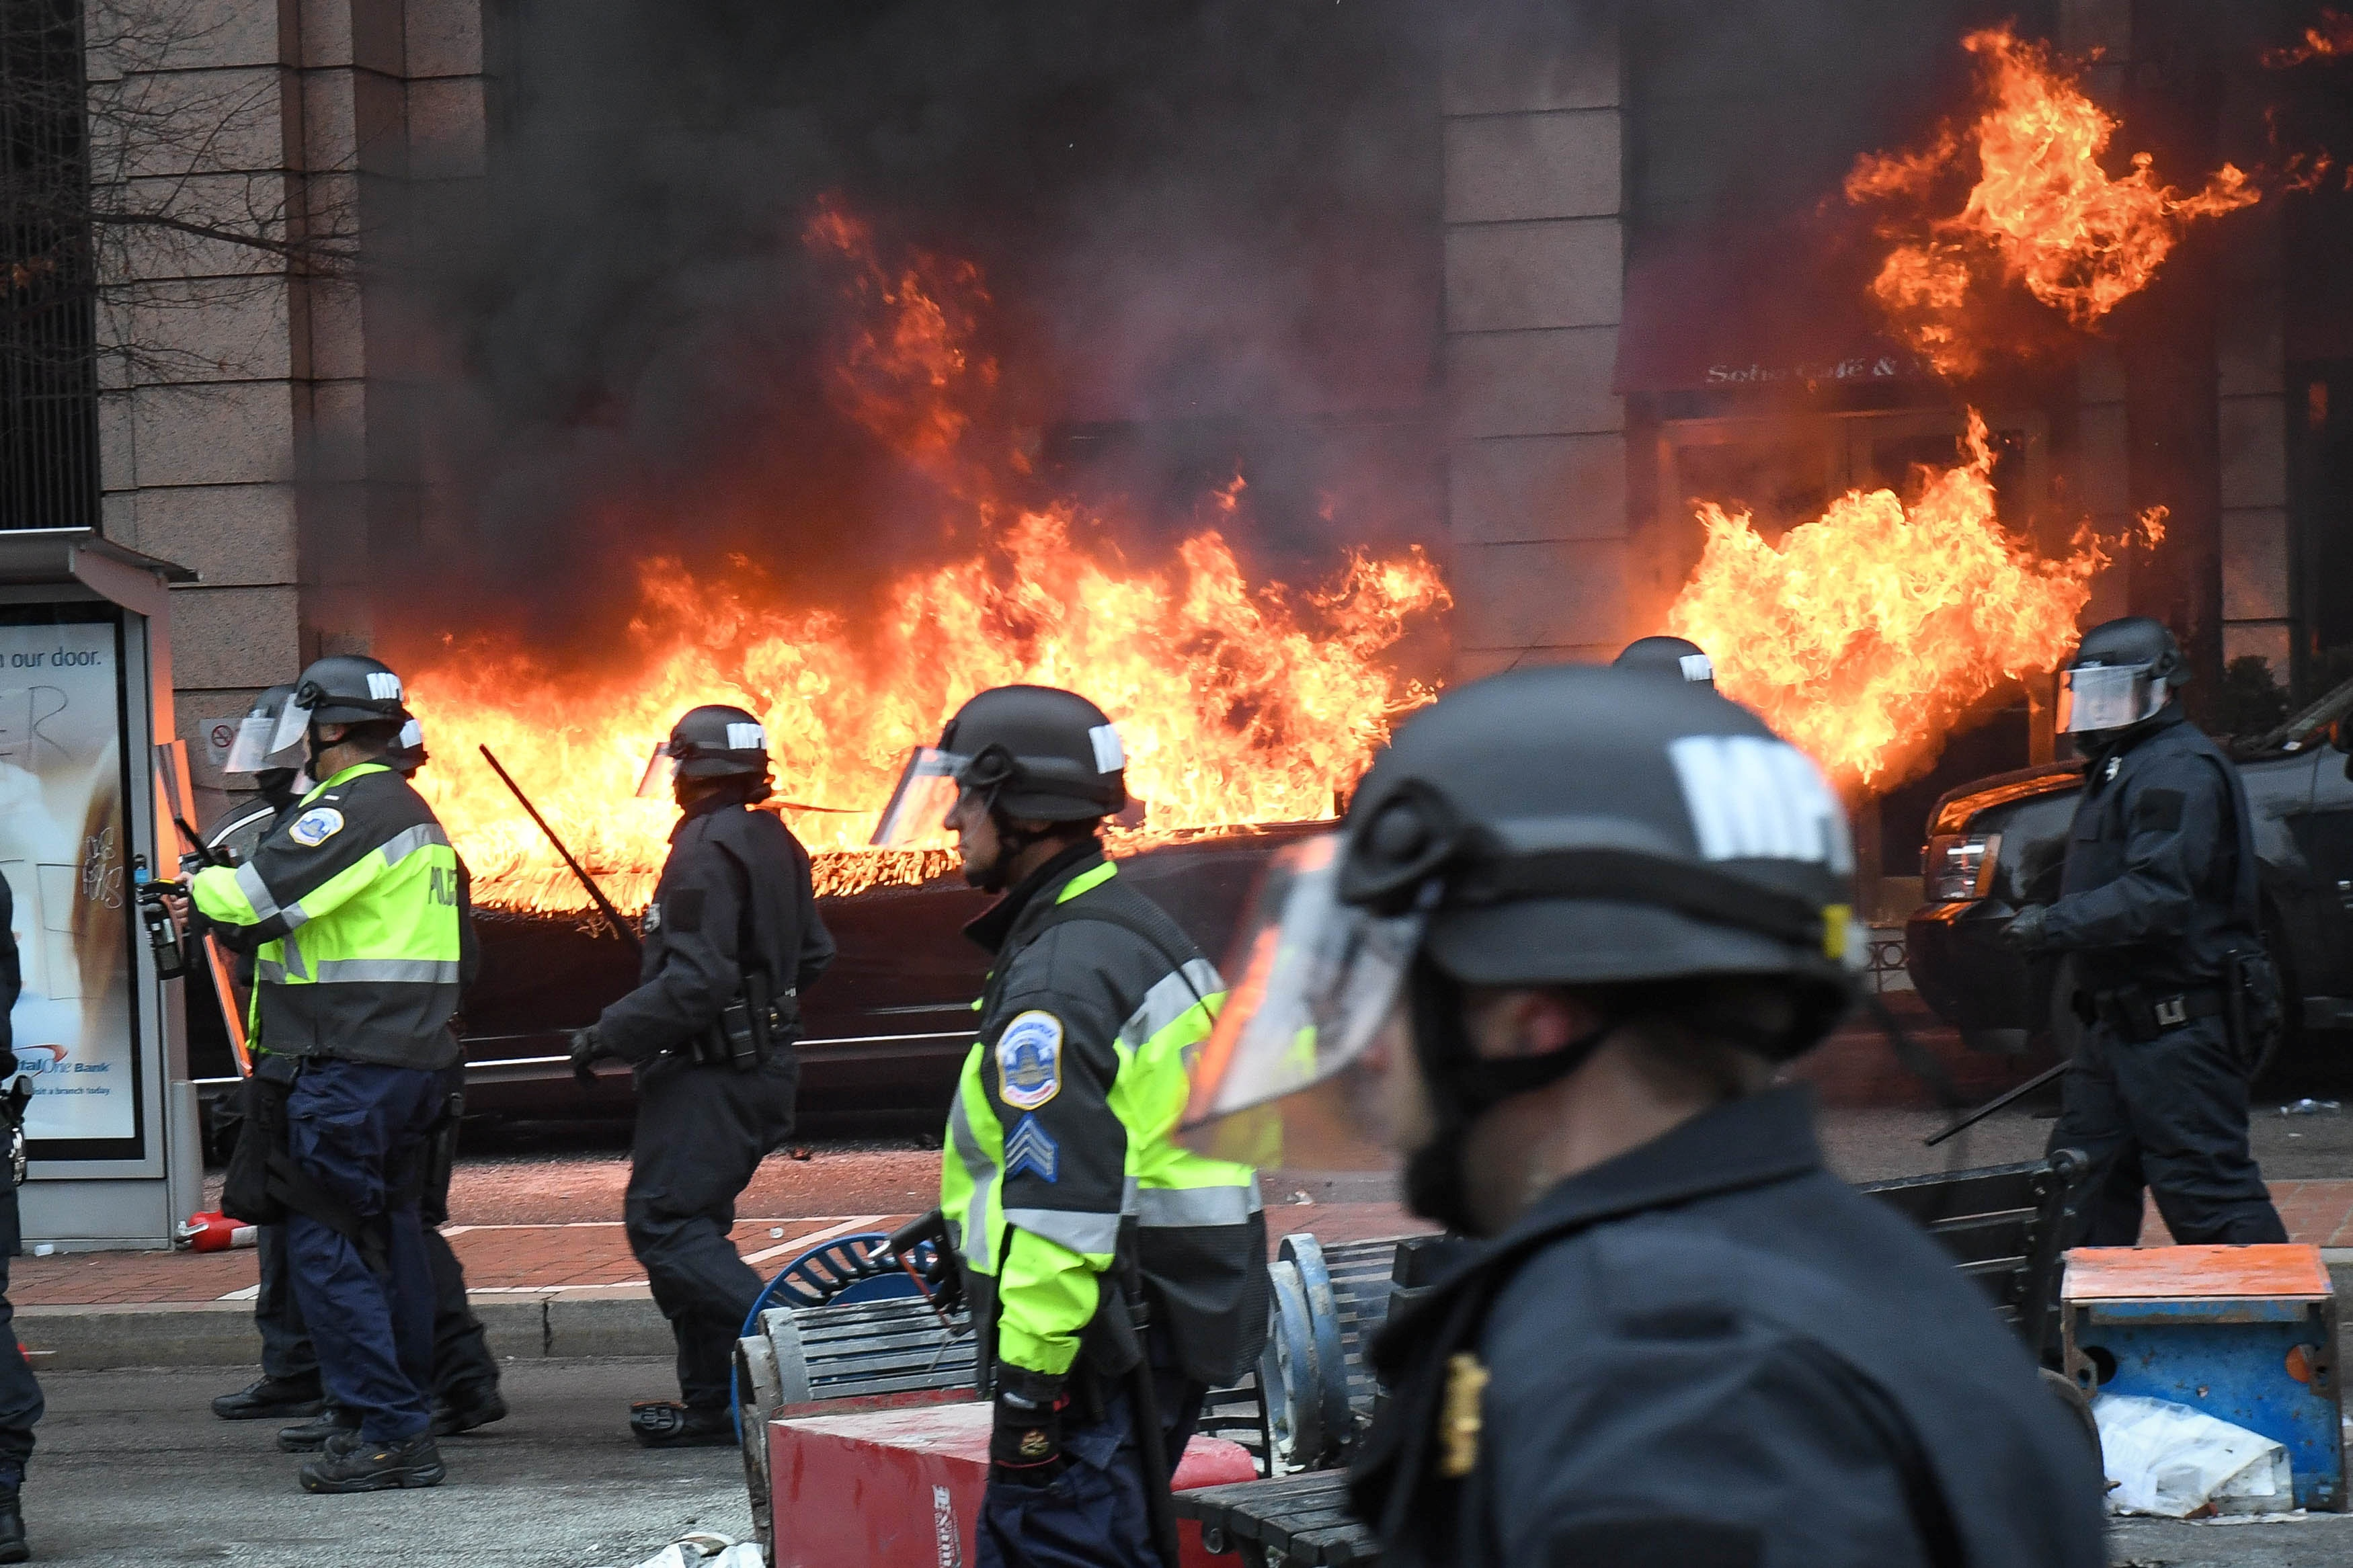 Police stand near a limousine which was set ablaze during a protest against US President Donald Trump on the sidelines of the inauguration in Washington, DC, US, on Jan 20, 2017. Reuters